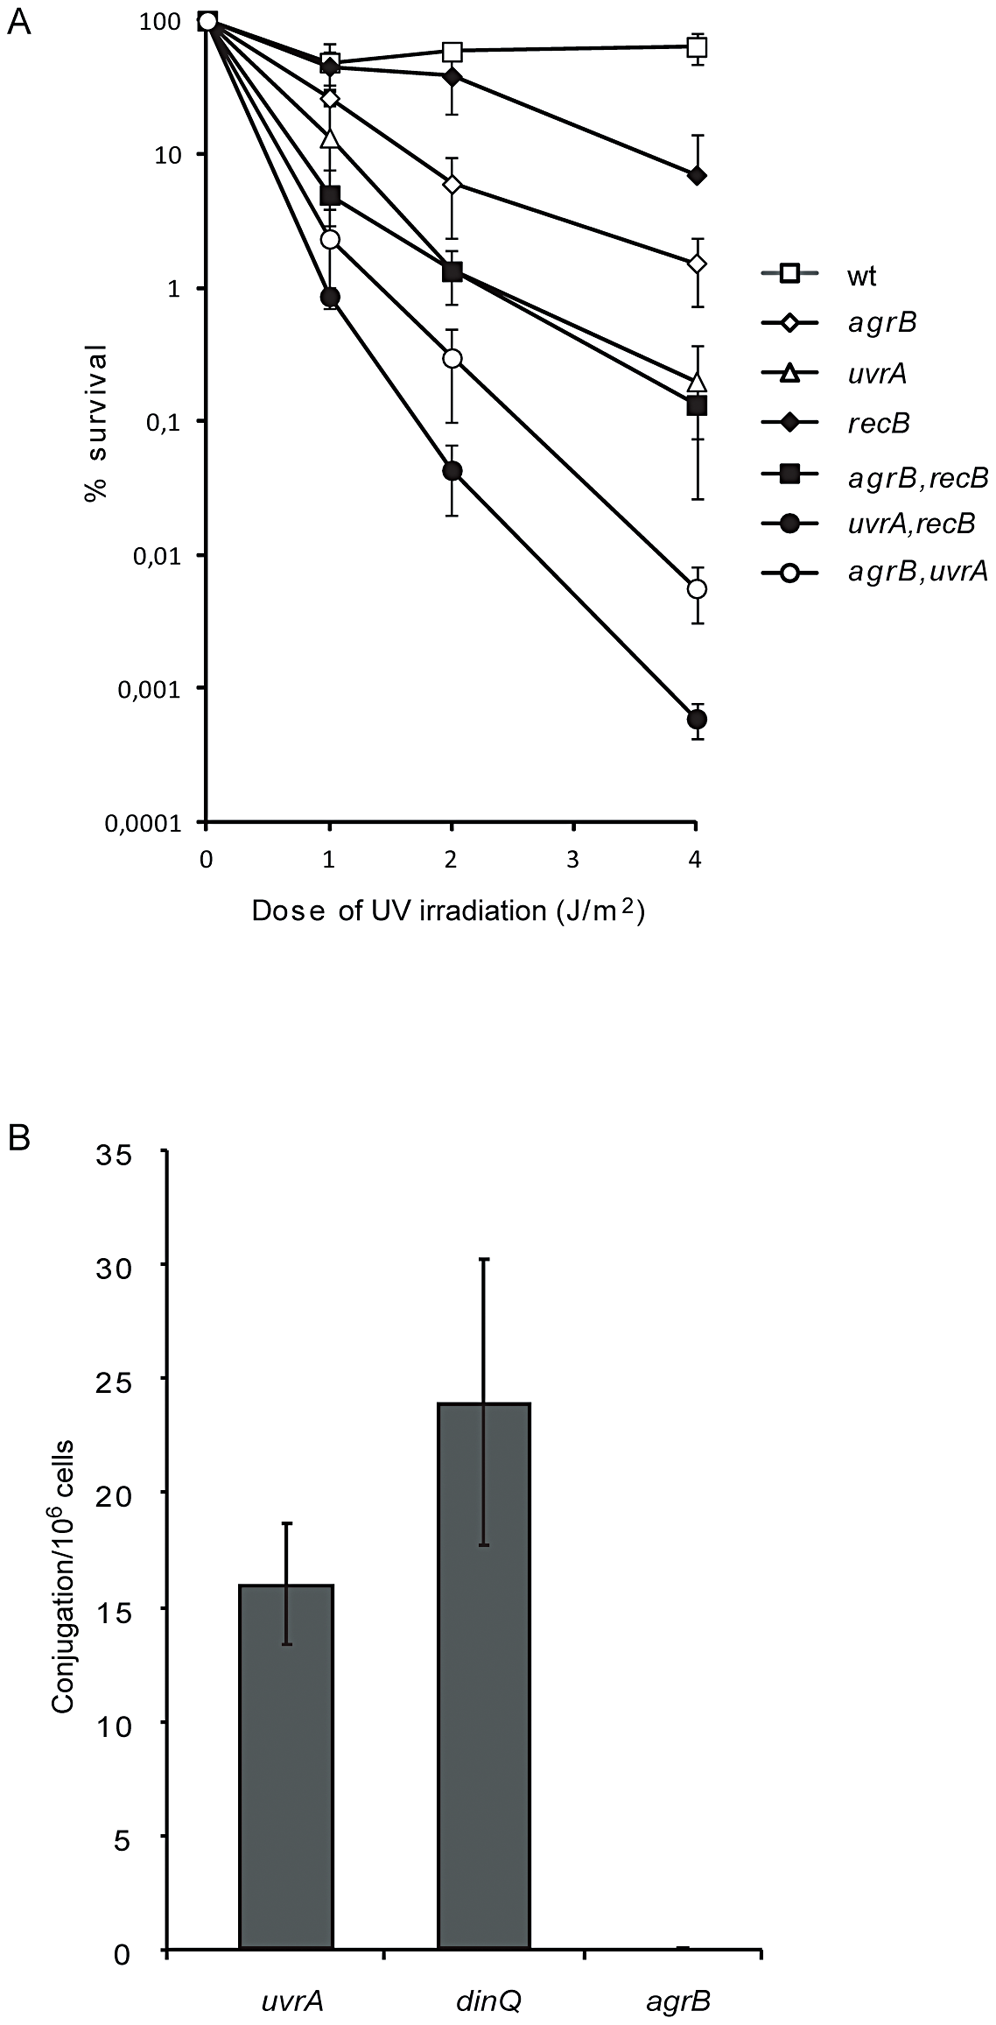 Genetic interactions between <i>agrB</i> and <i>uvrA</i>/<i>recB</i> and recombination frequency of <i>agrB</i>.